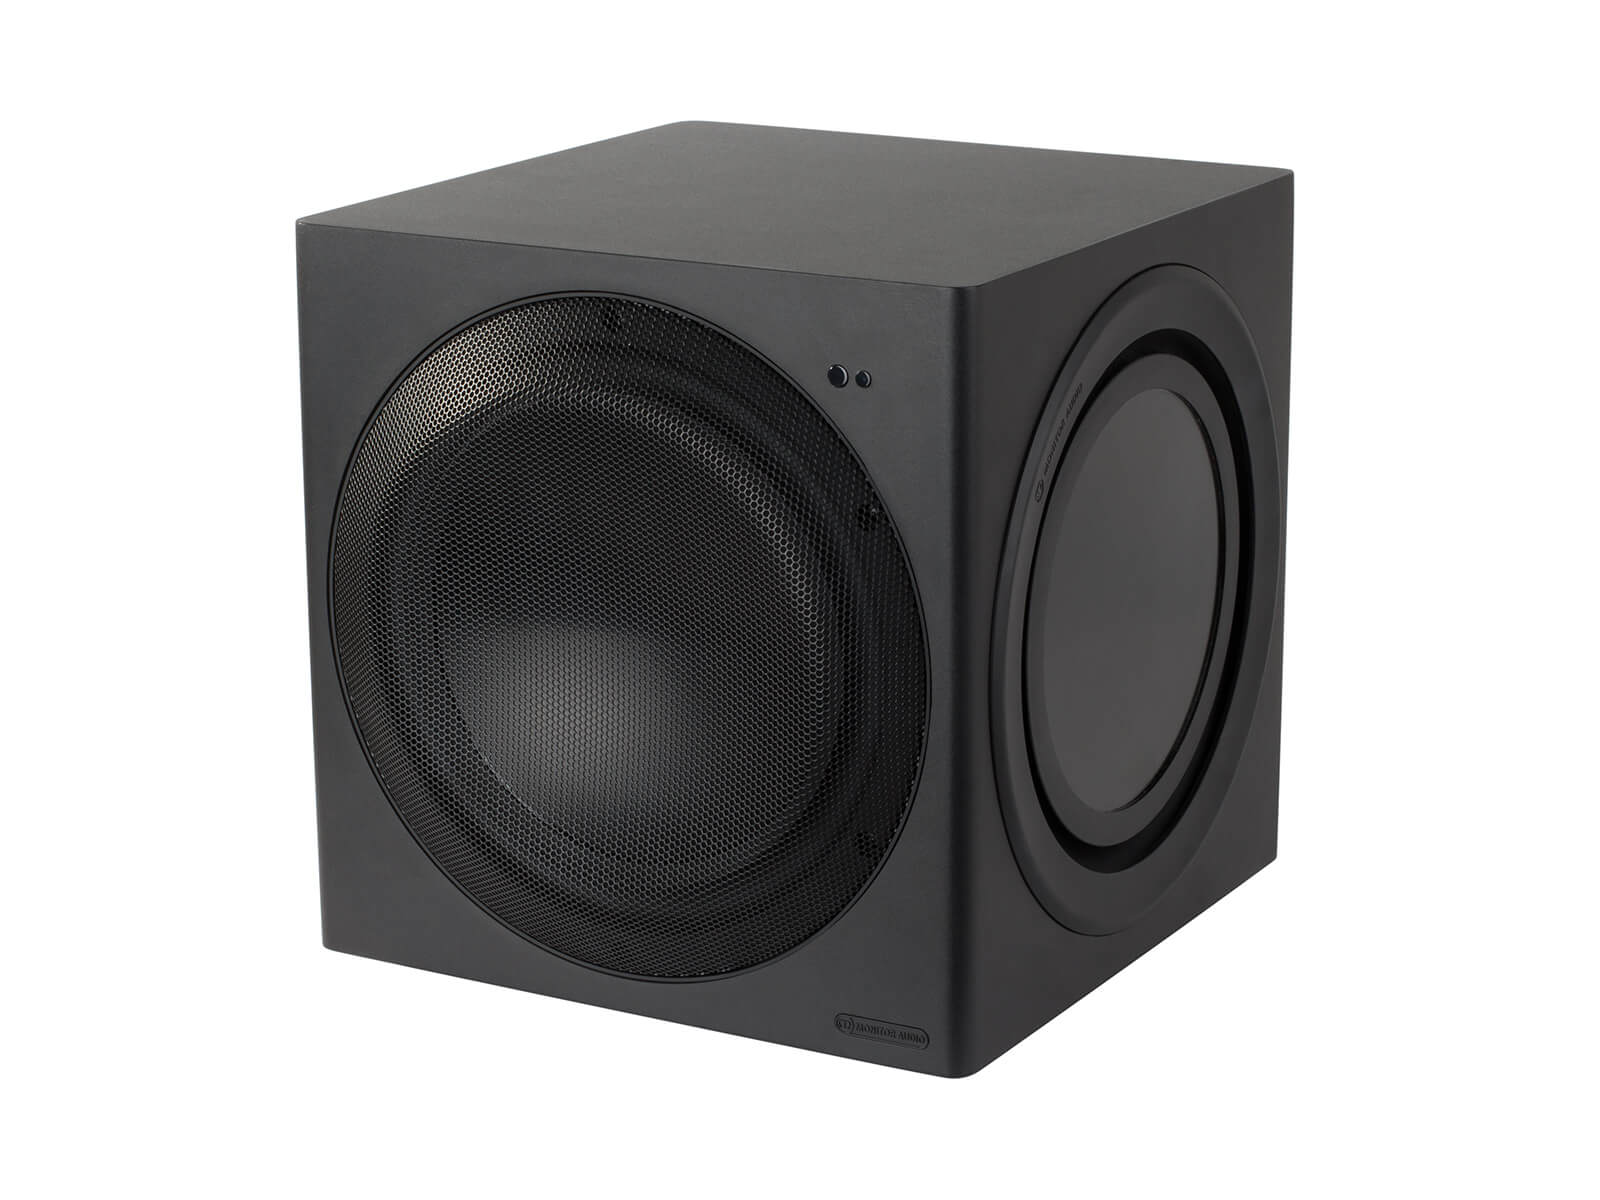 CW10 compact subwoofer, ISO view.